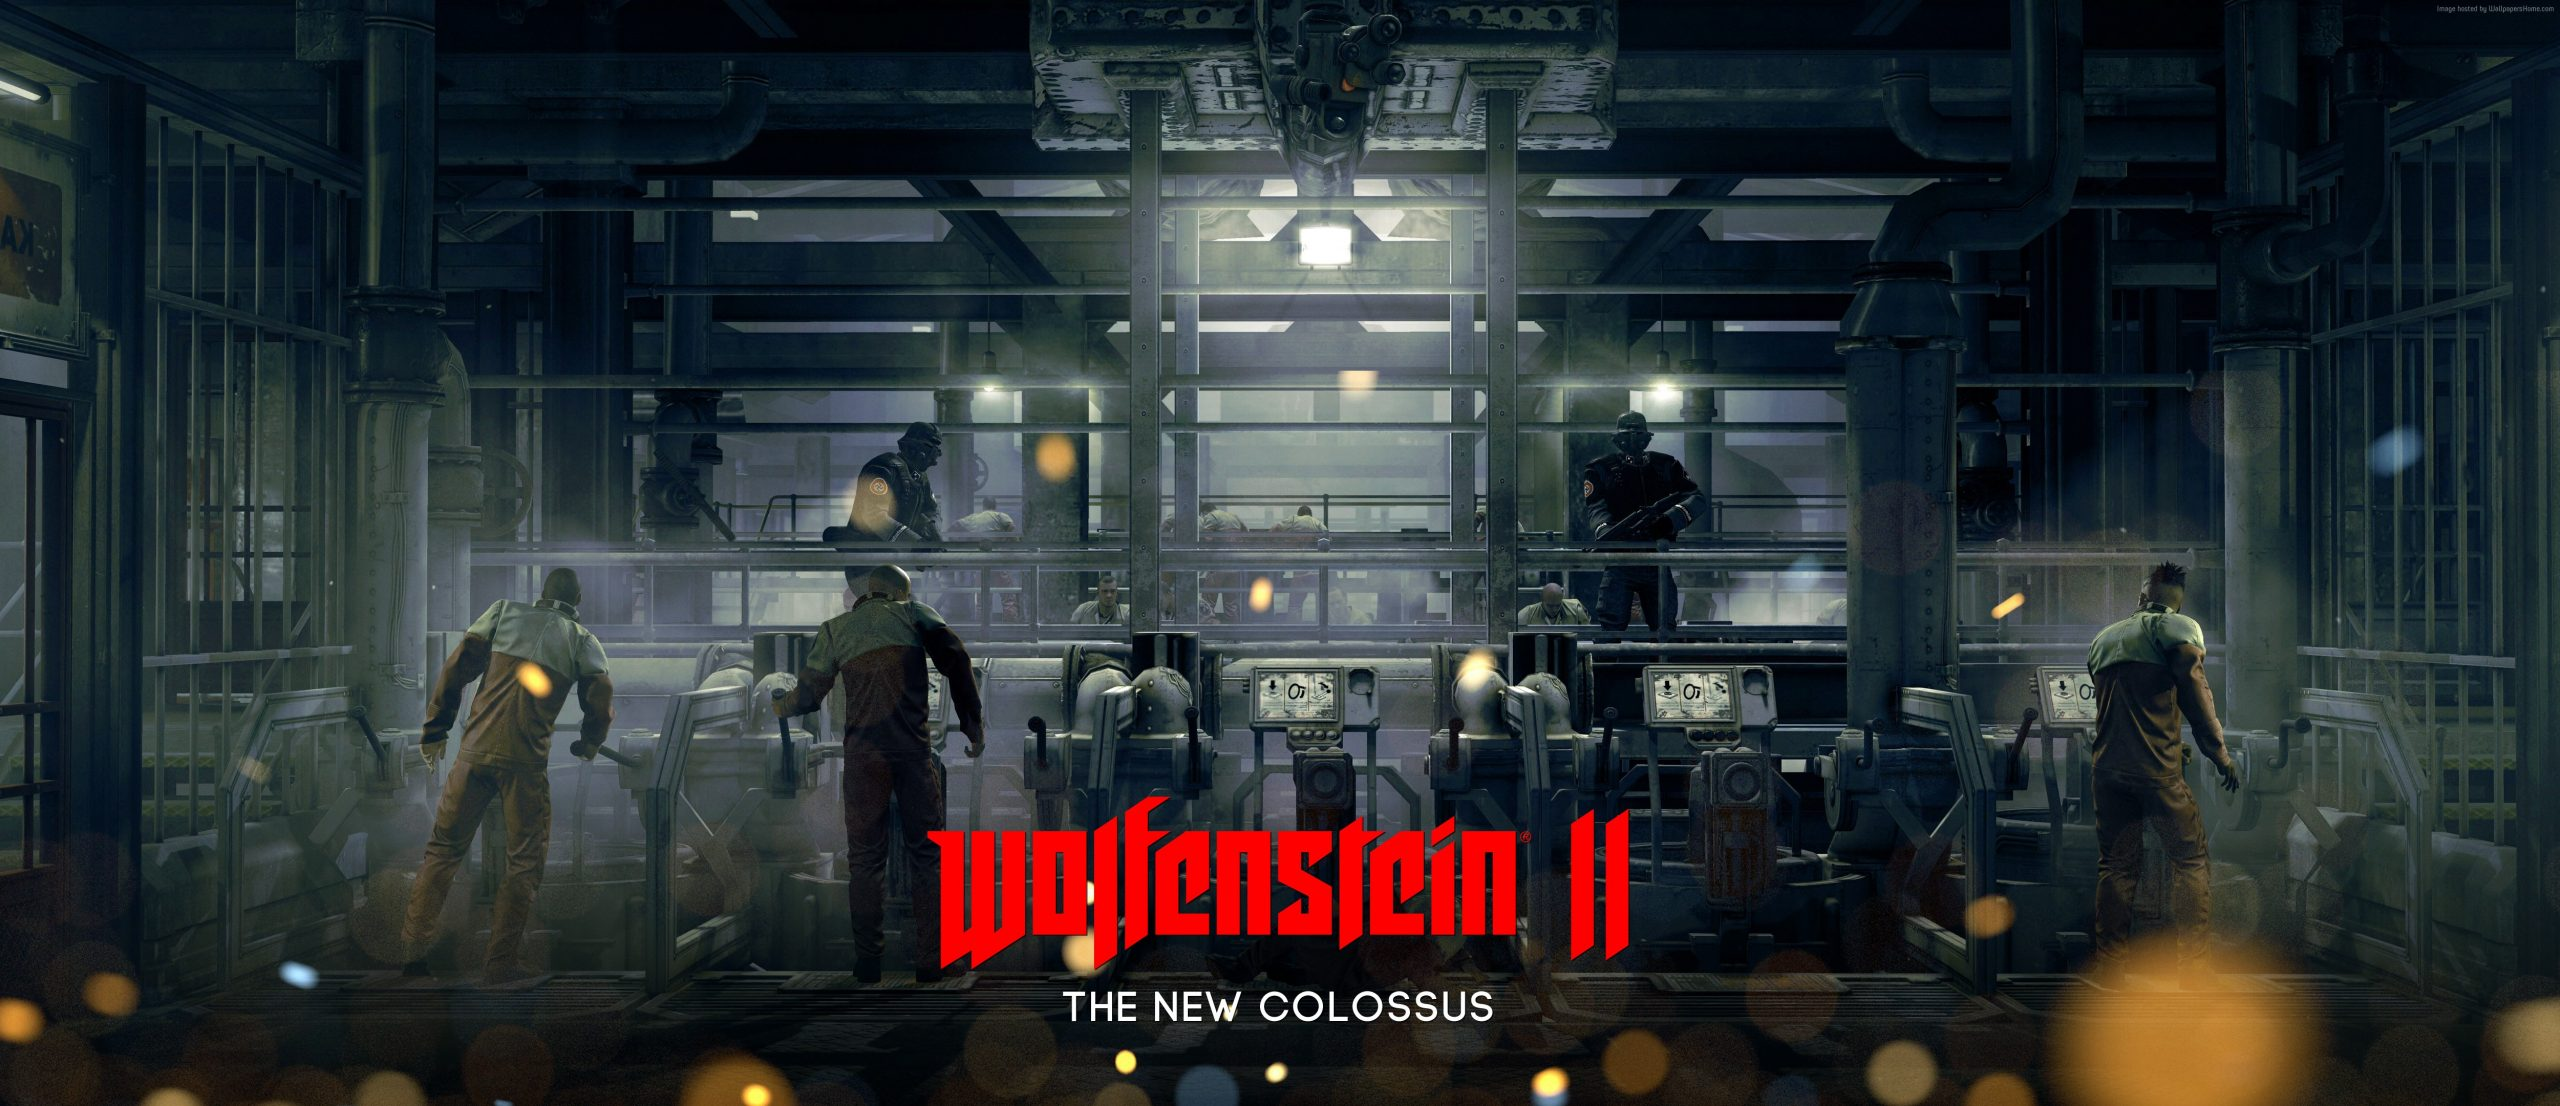 Wolfenstein II 2: The New Colossus Activation Key PC Game Free Download